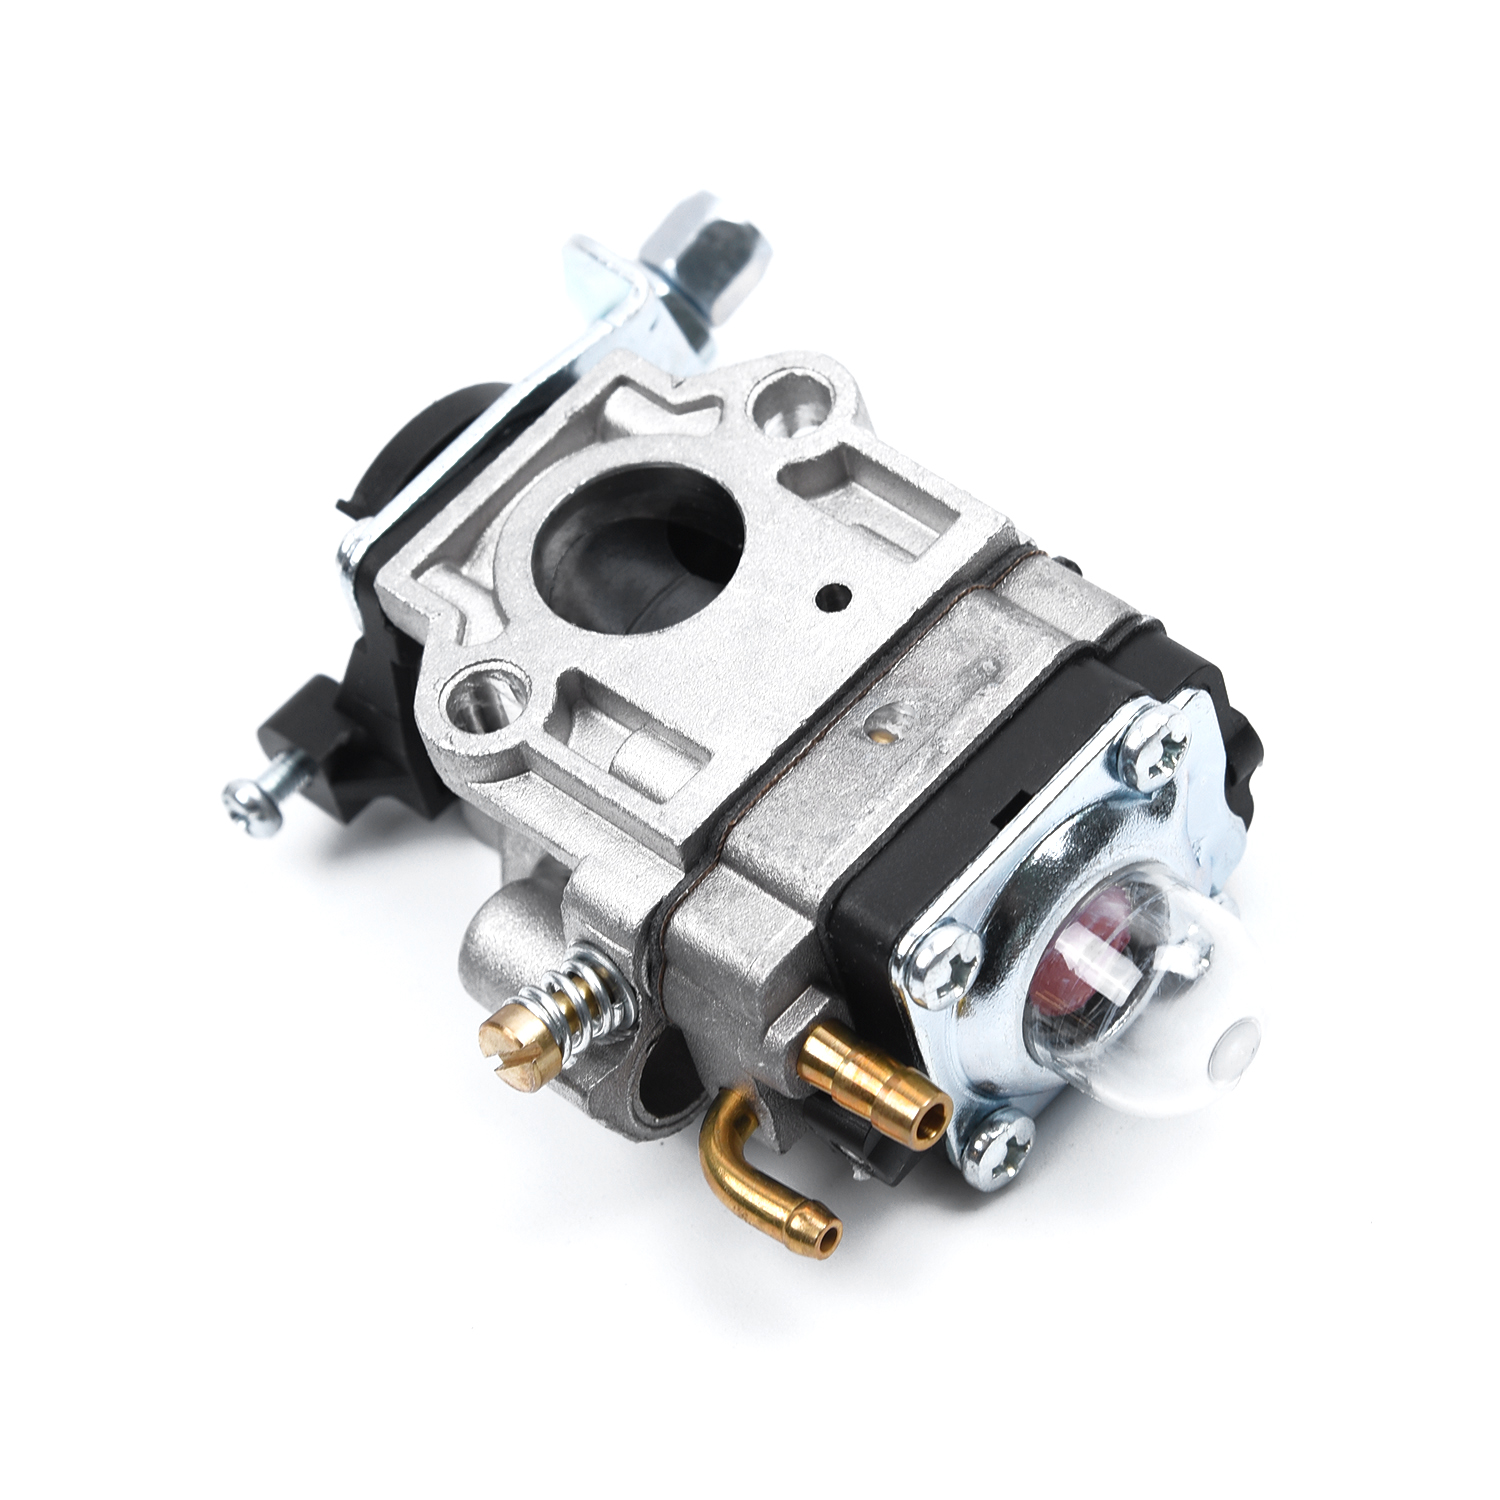 15mm Carburetor For Brushcutter 43cc 49cc 52cc Strimmer Cutter Carb Replace Part Garden & Patio